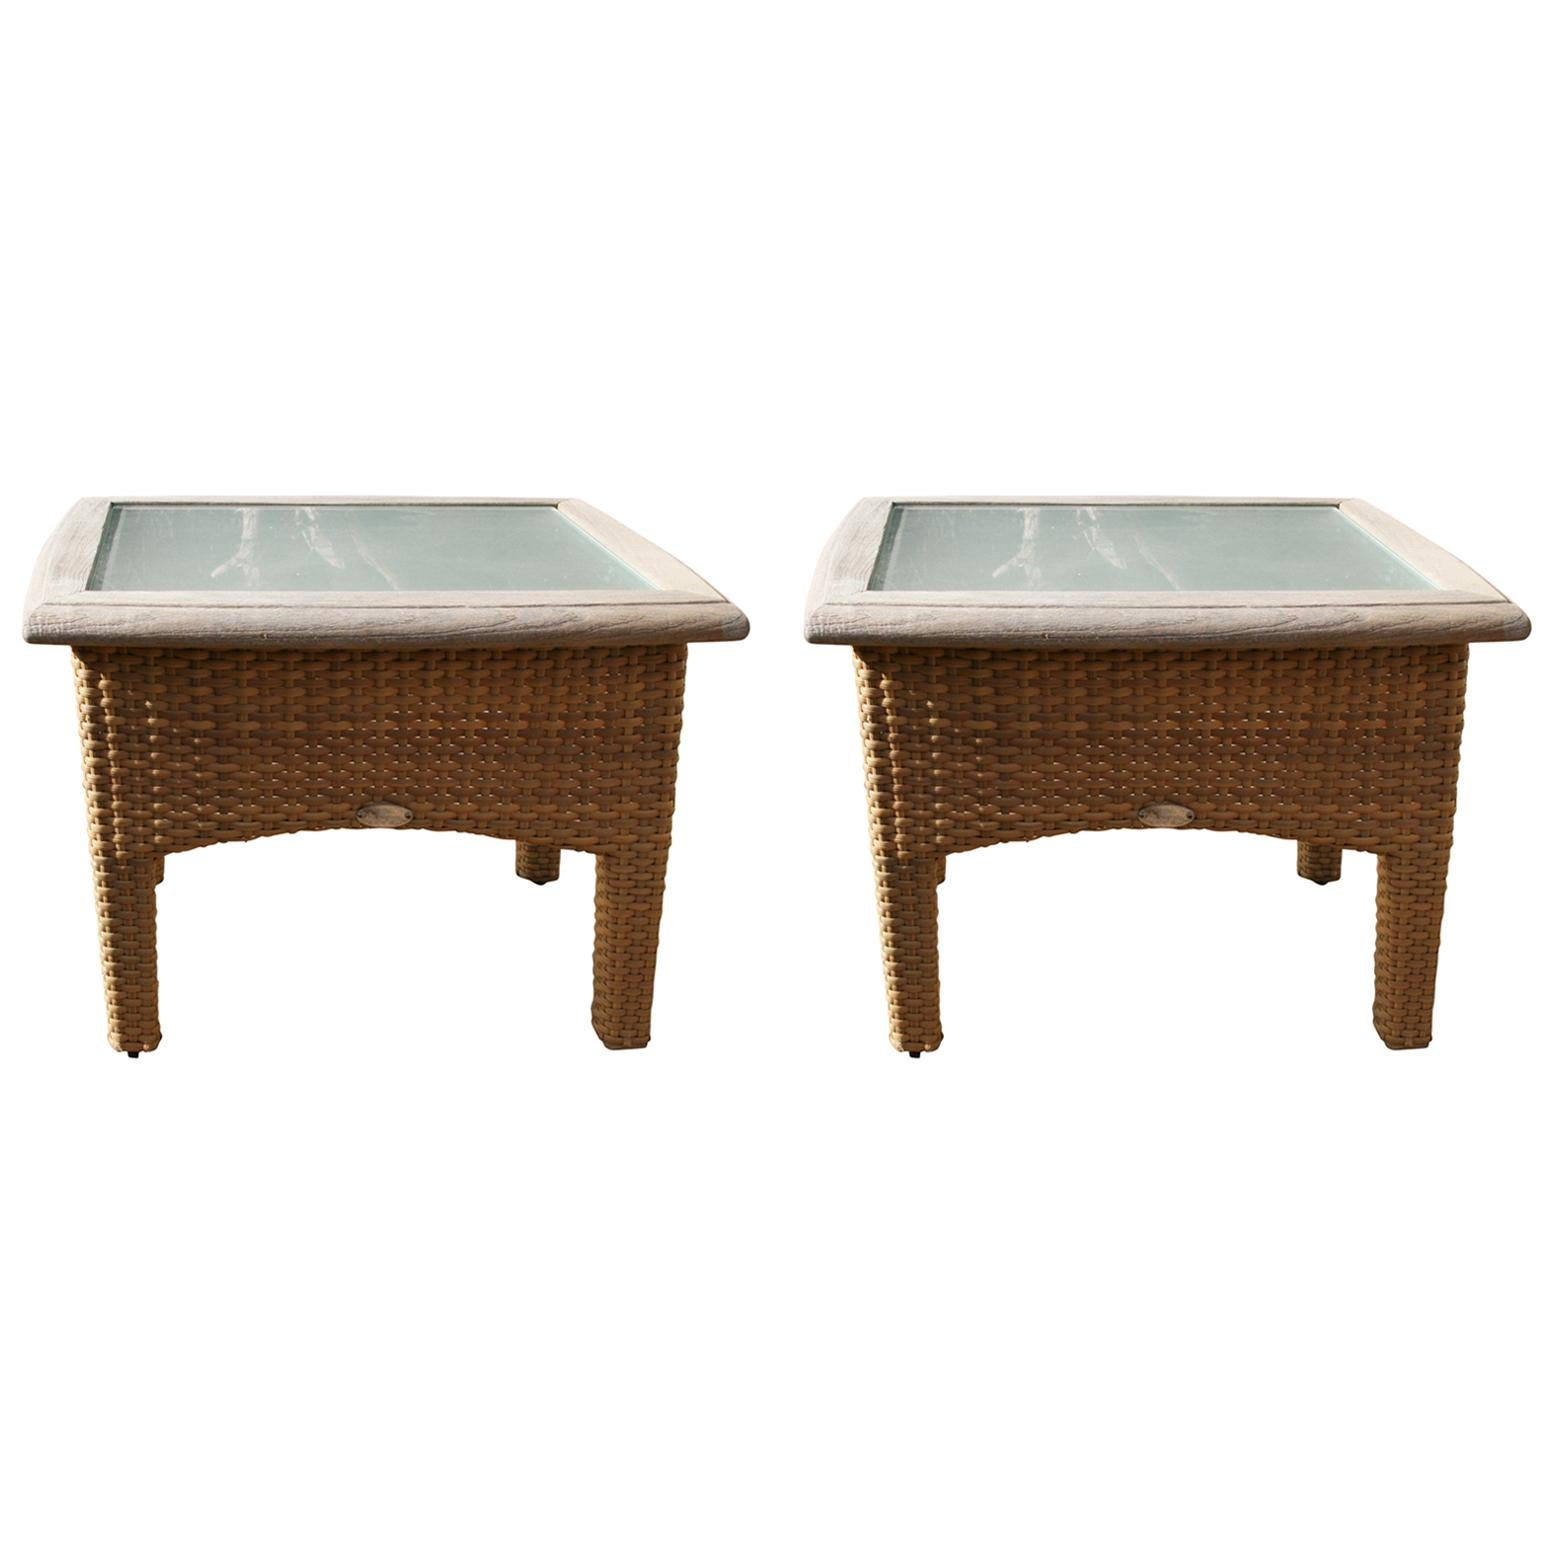 Pair Gloster Weathered Teak and Outdoor Wicker Garden Tables with Frosted Glass